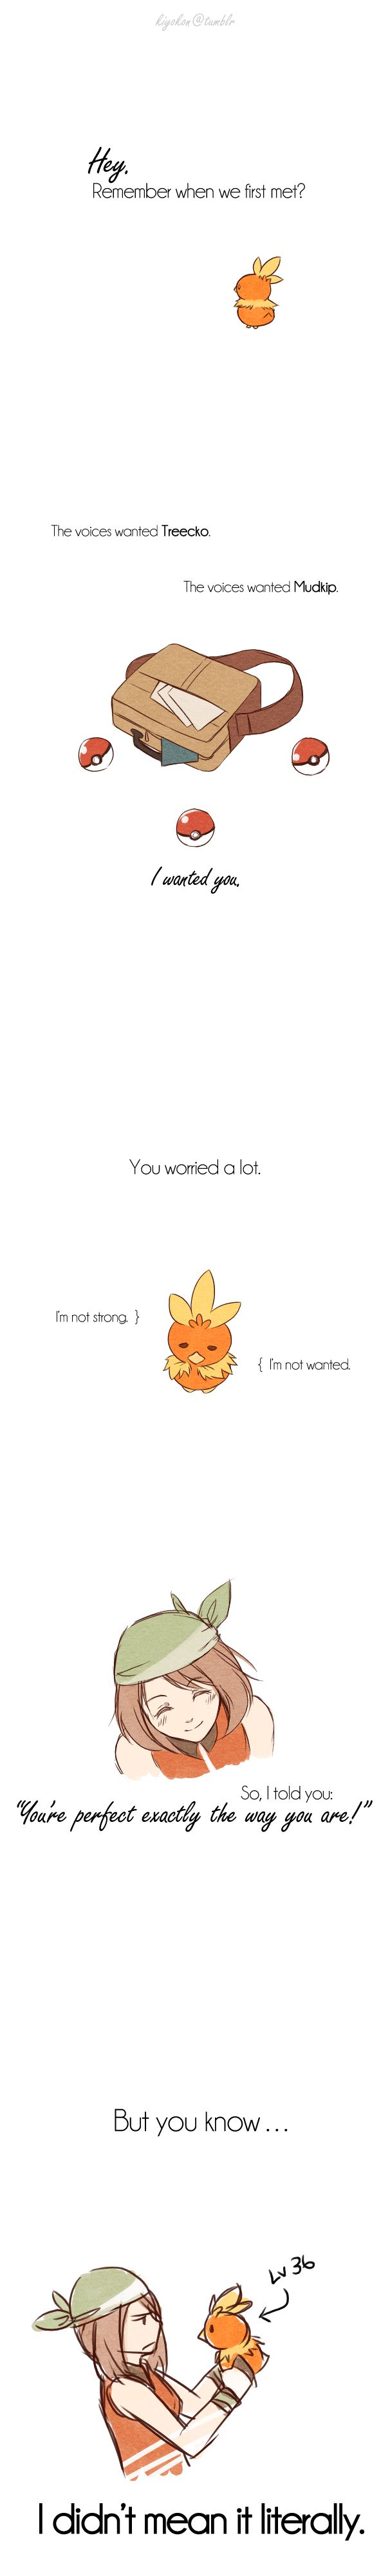 hahah, she wouldn't like my level 100 pichu and pikachu then.